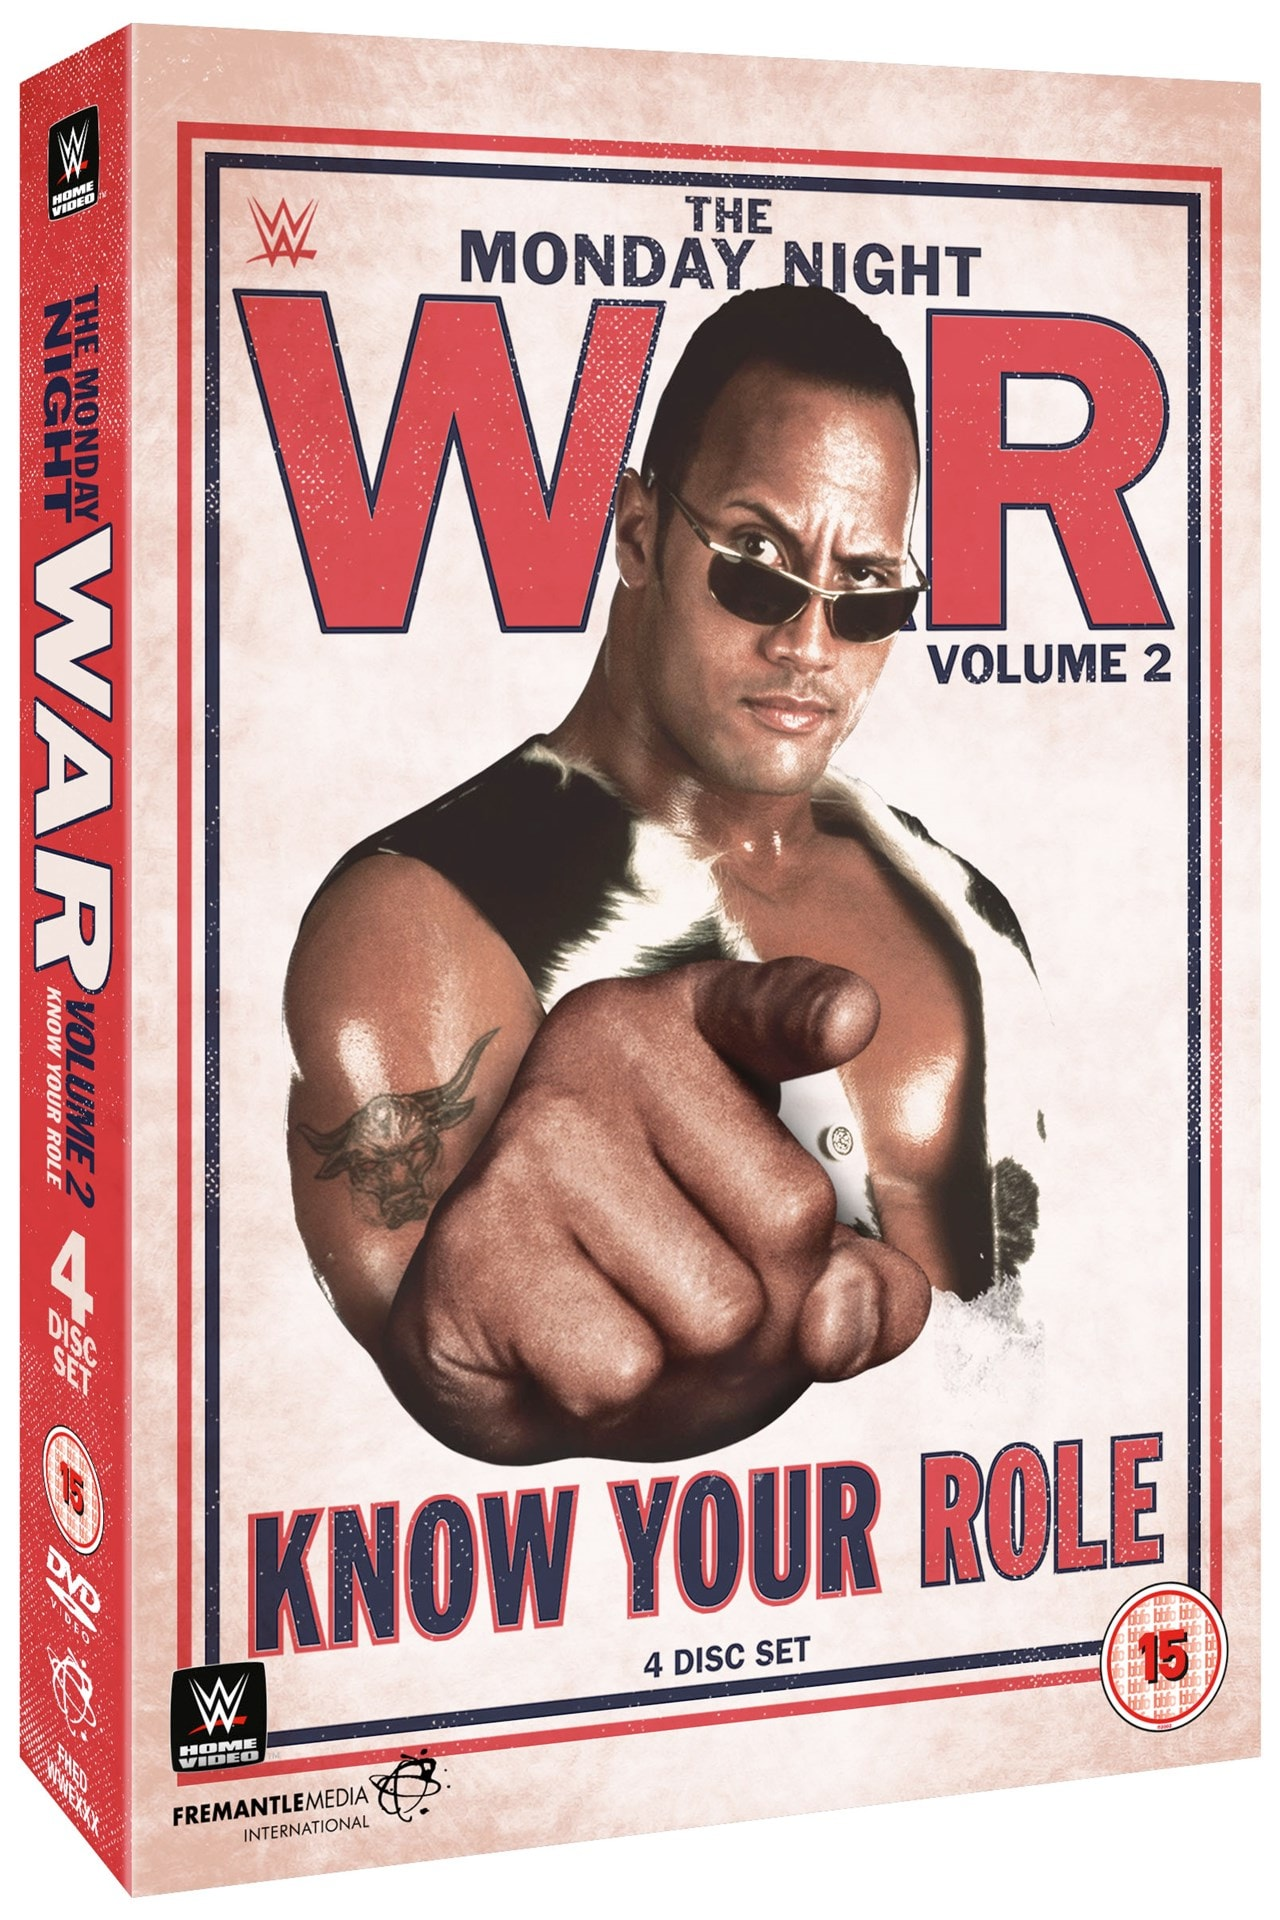 WWE: Monday Night War - Know Your Role: Volume 2 - 1